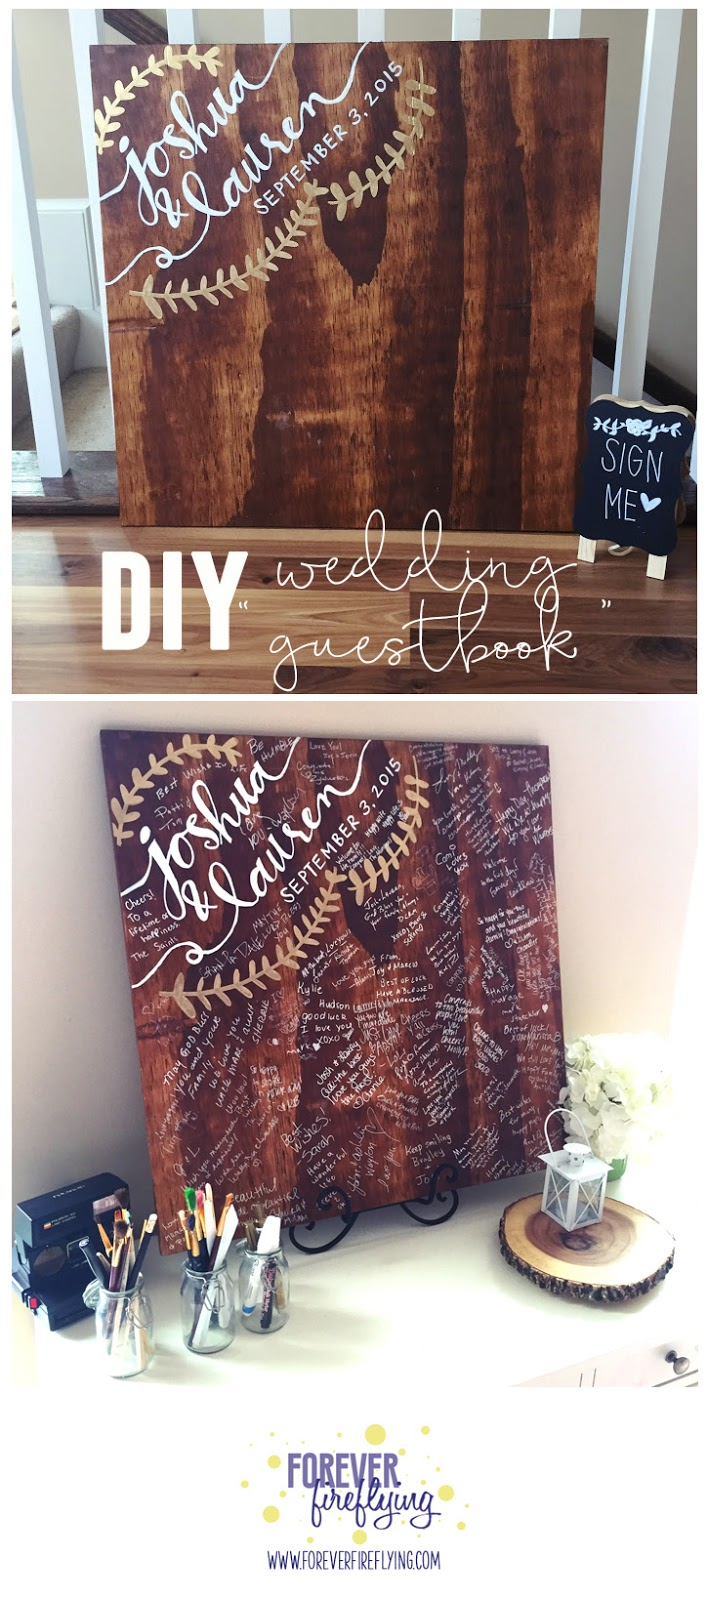 Things to DIY For Your Wedding & Things Best Left to the Professionals Planning your dream wedding is exciting, yet can very quickly become very stressful, especially if you plan on doing any part of the wedding yourself.